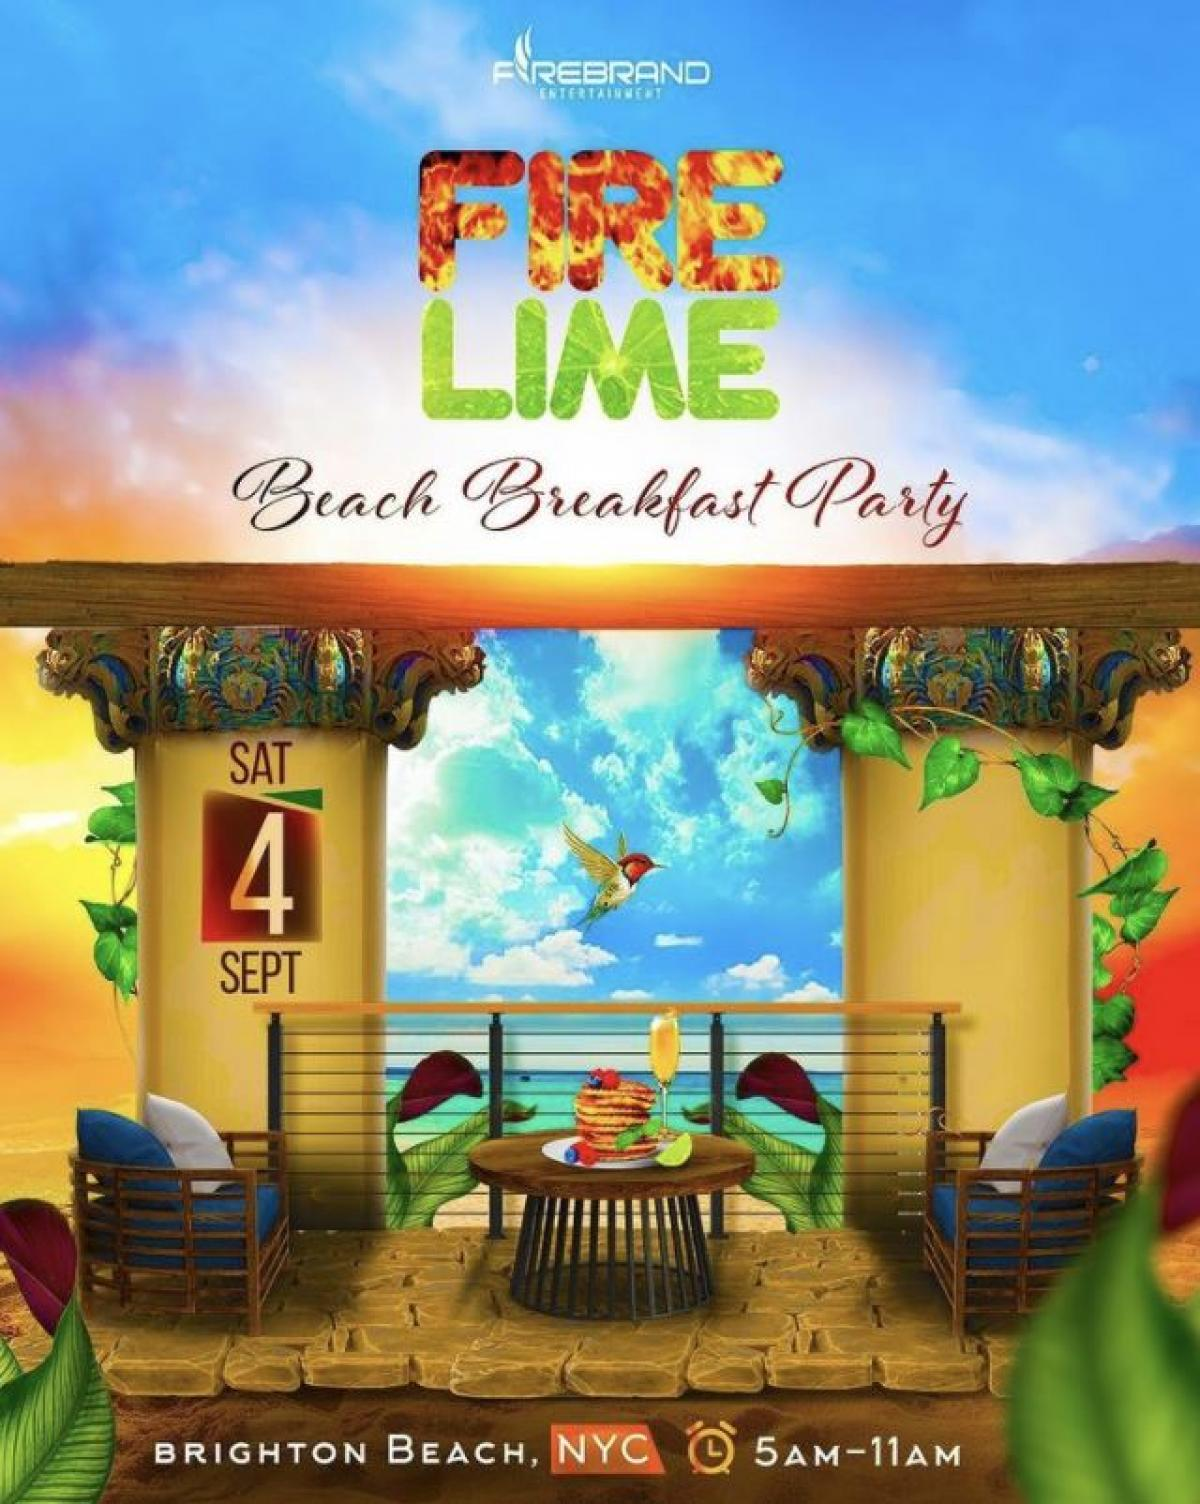 Fire Lime: Beach Breakfast  Party flyer or graphic.